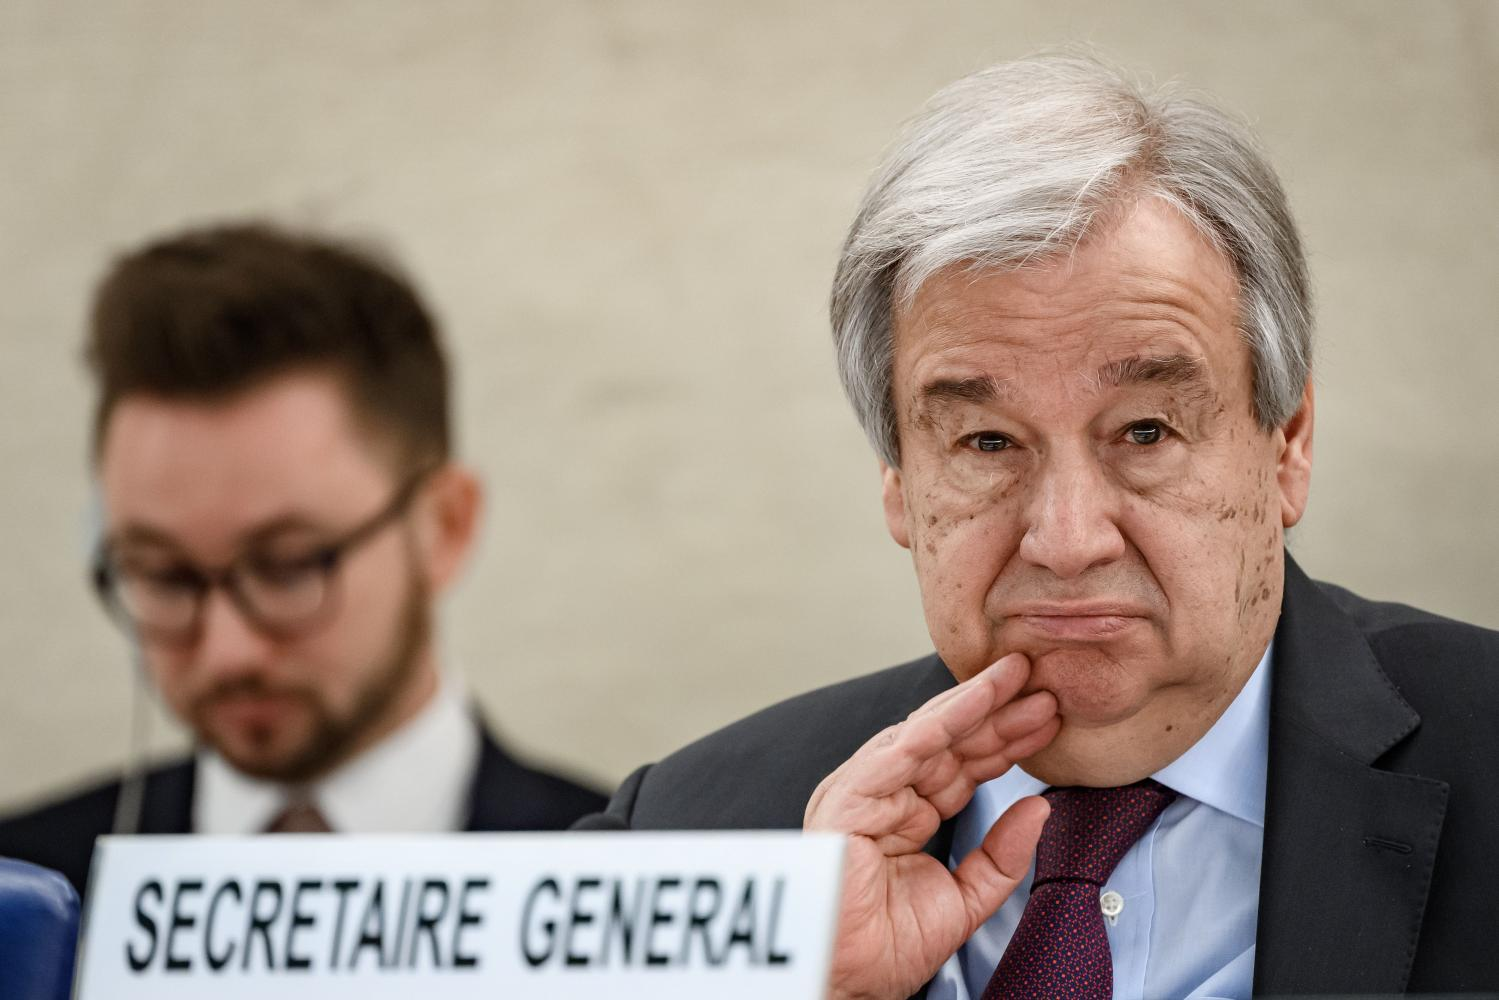 António Guterres does not deserve a second term